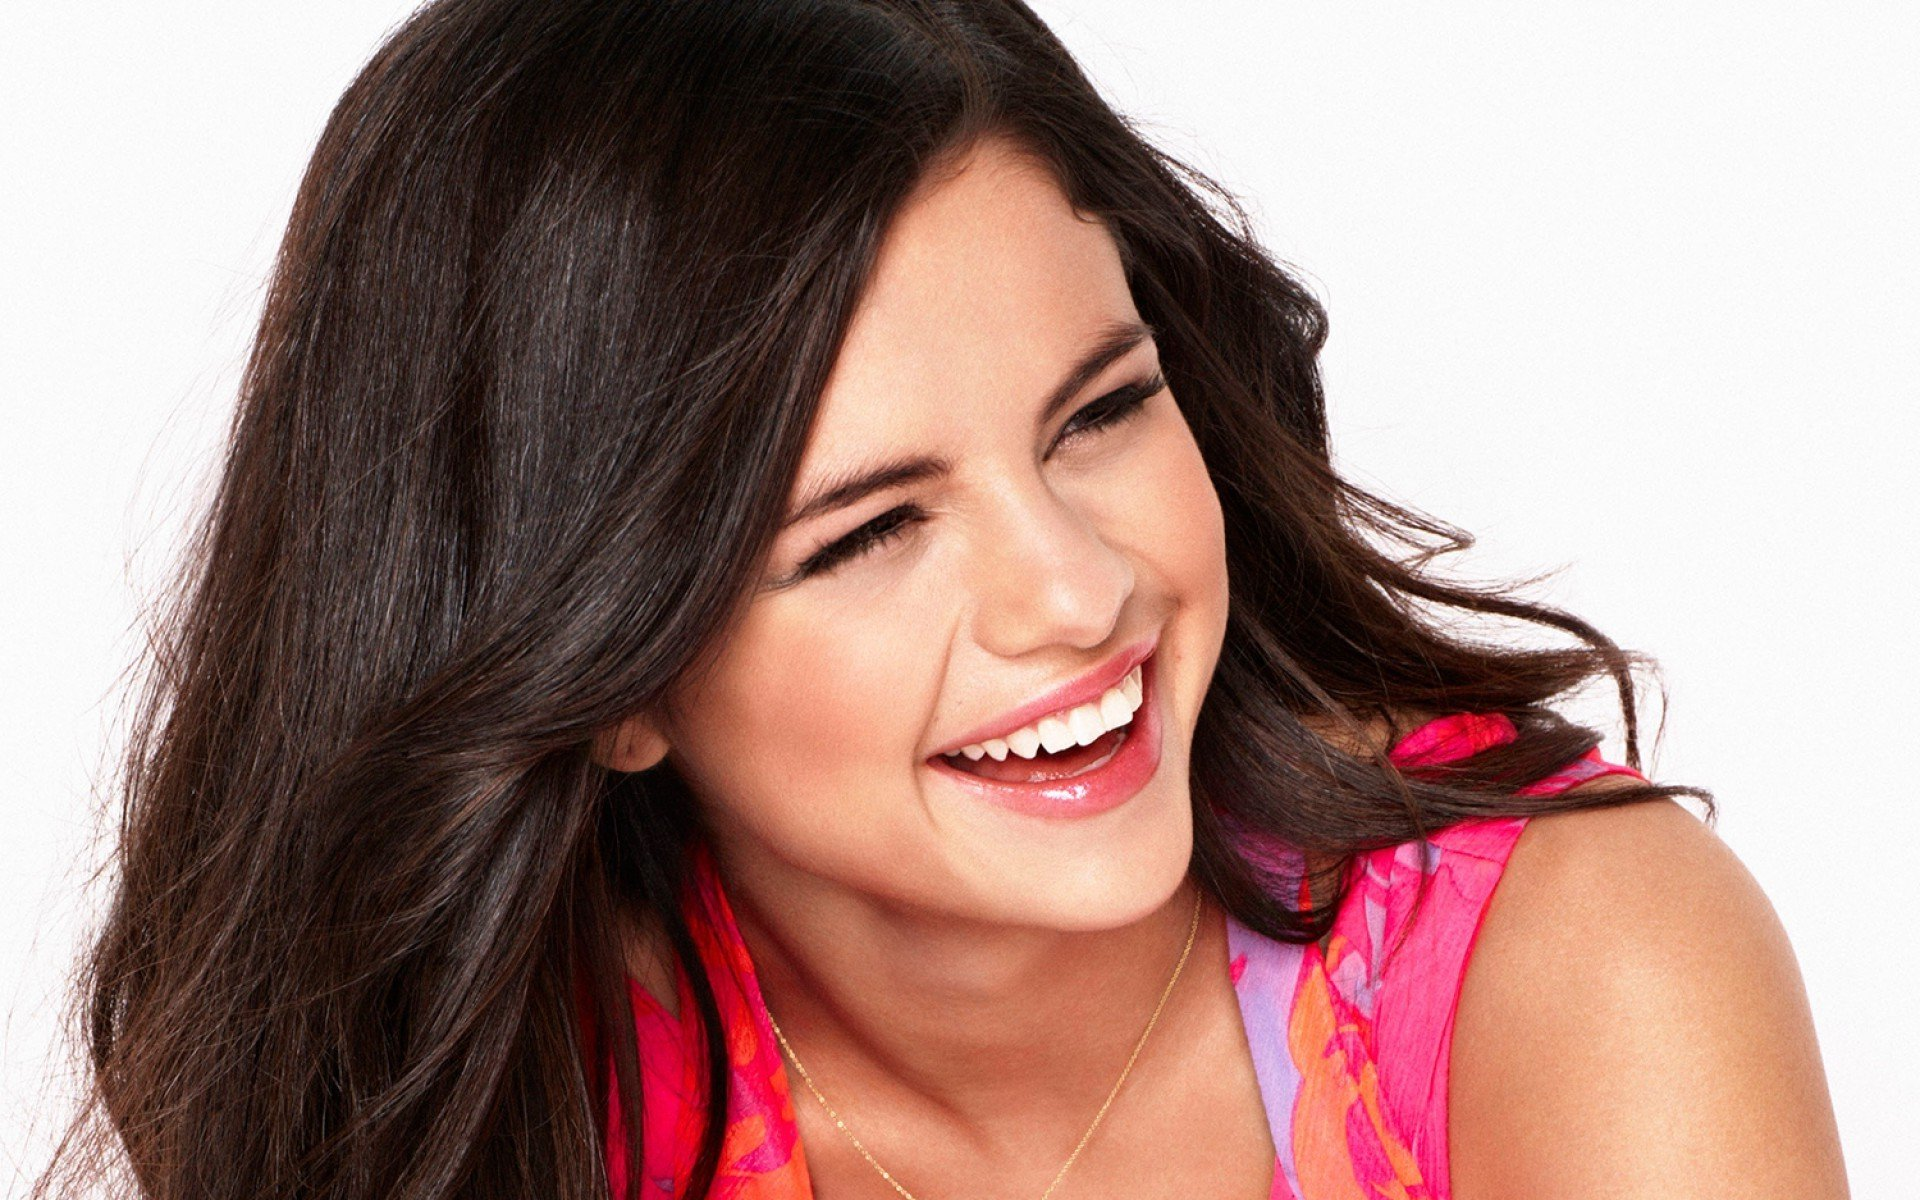 Wallpaper Hd Iphone Cute Men Selena Gomez S Screensaver A Cute Picture Of The Weekend